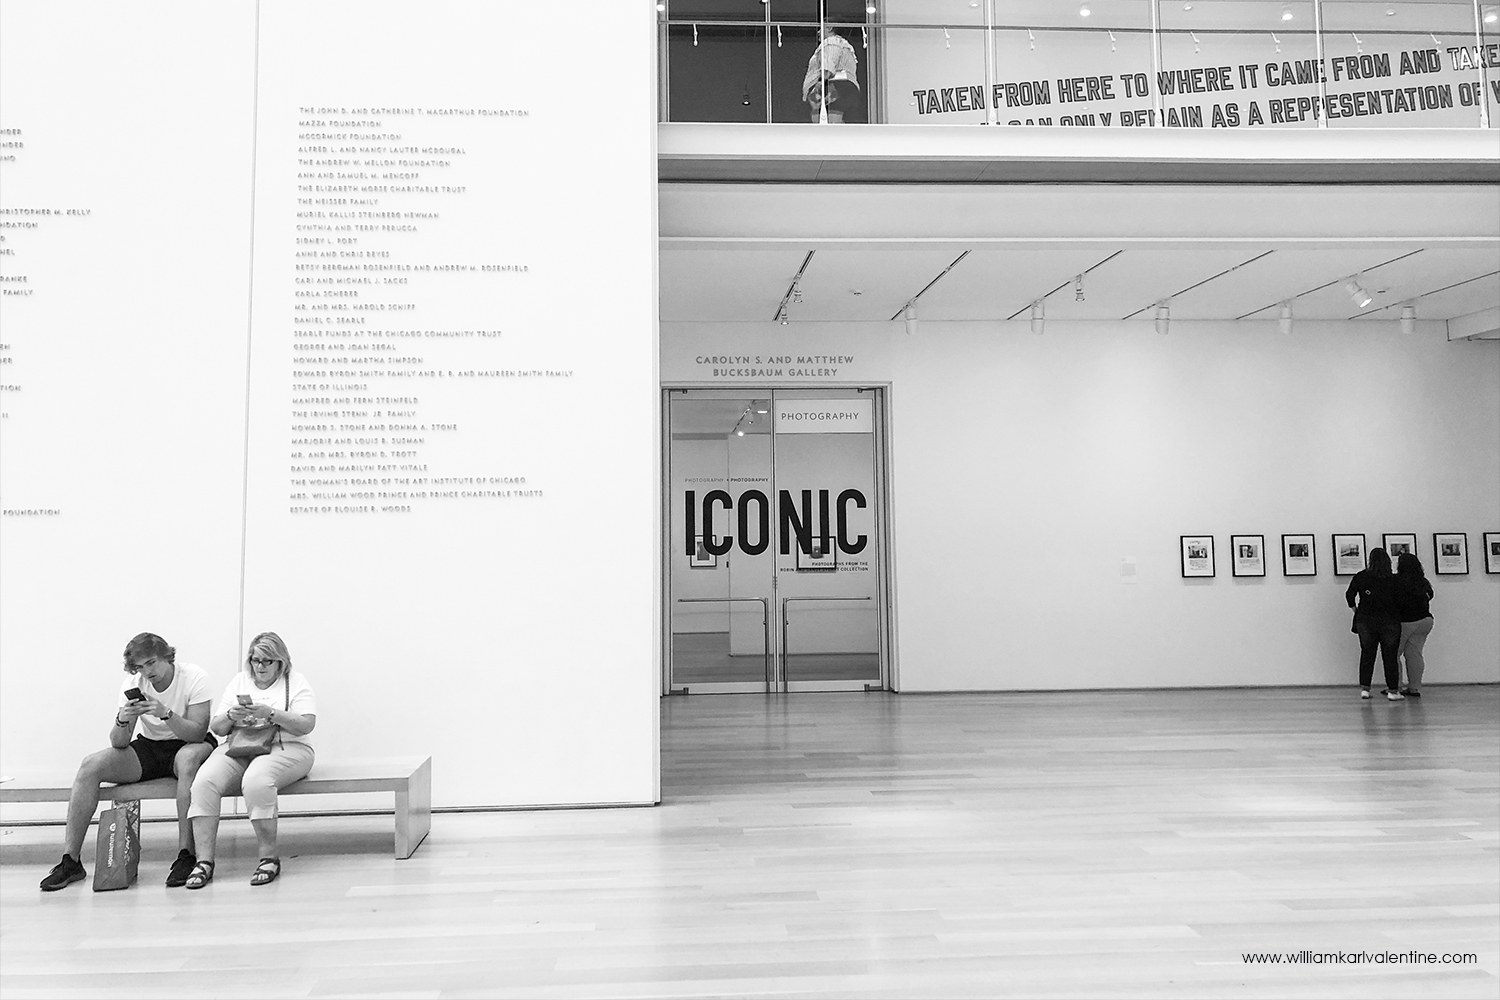 Unfortunately the Iconic exhibition at The Art Institute of Chicago closed just after I saw it but for those who missed it hopefully this post will help you appreciate how good it was.